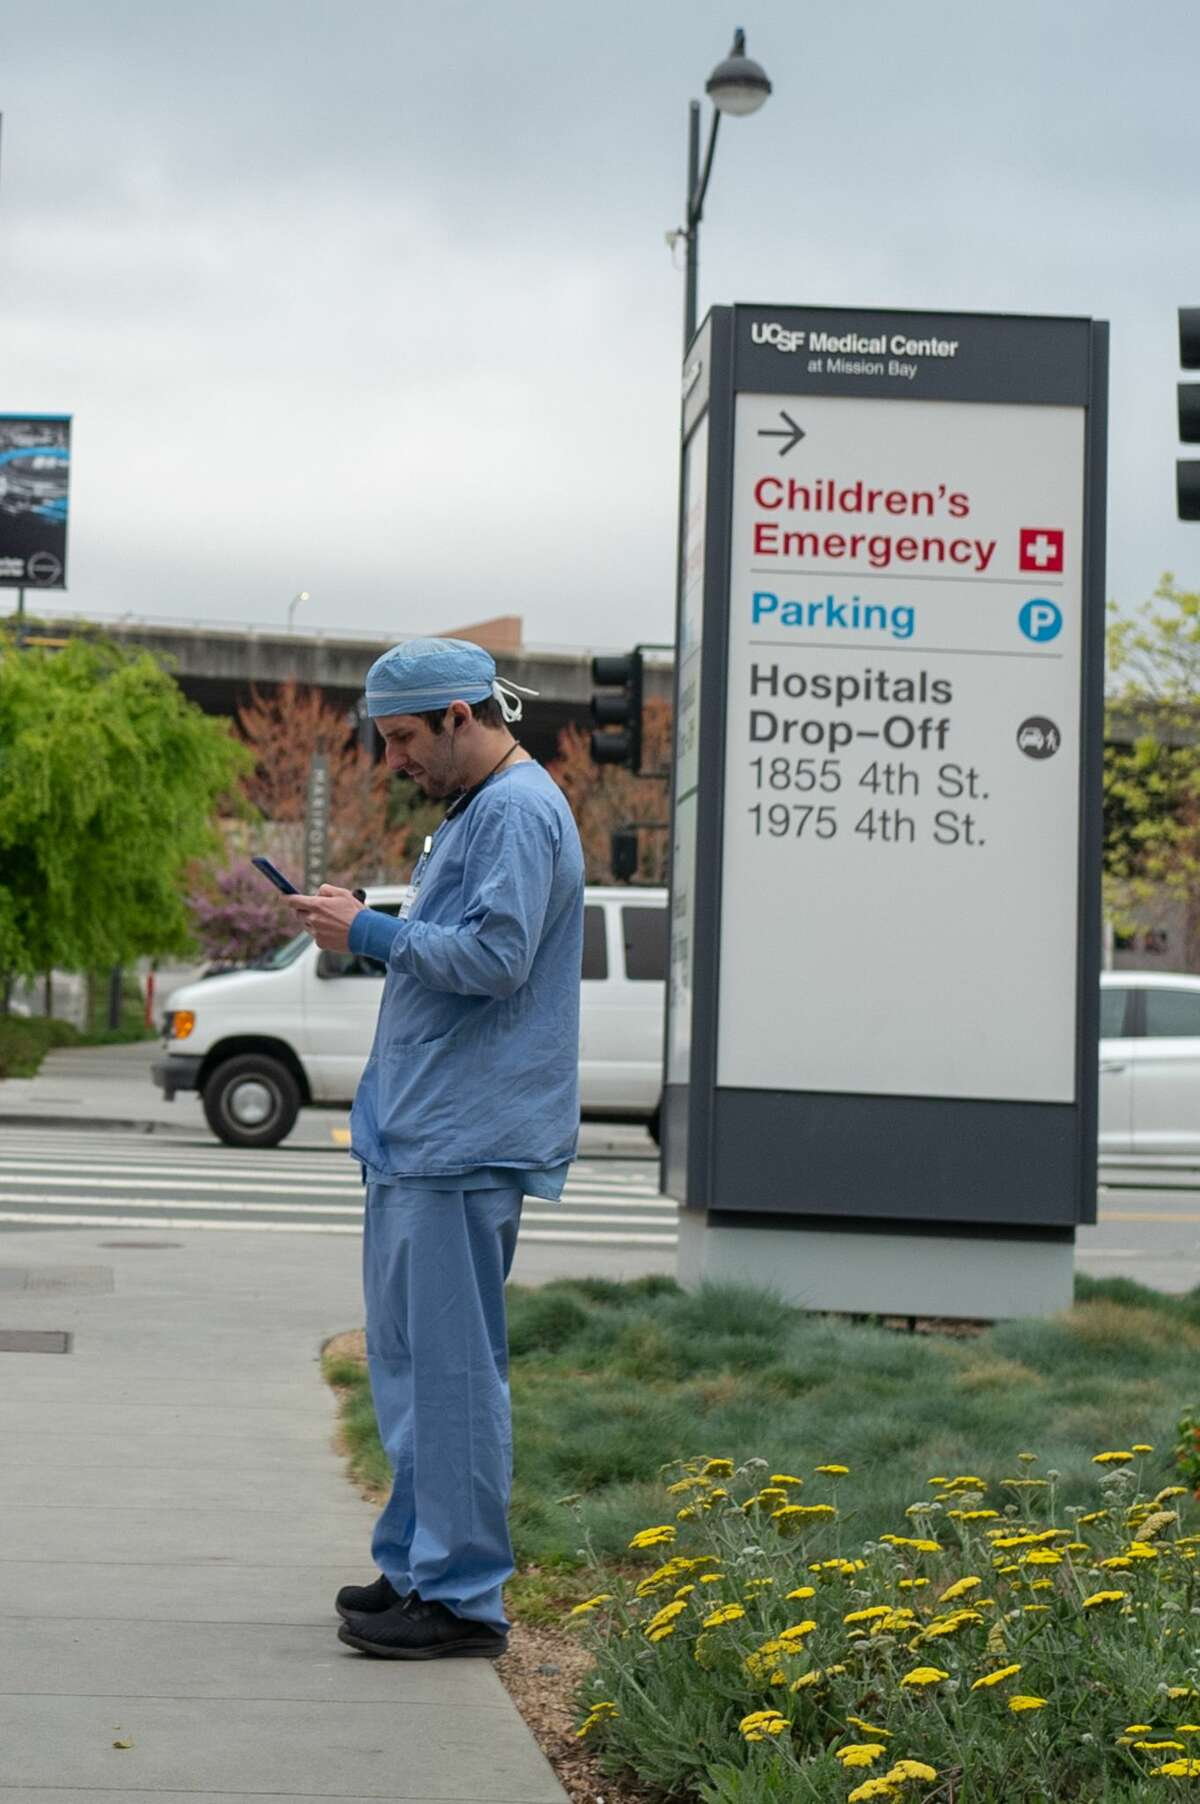 A medical provider in scrubs stands near a sign outside the University of California San Francisco (UCSF) medical center in Mission Bay during an outbreak of the COVID-19 coronavirus in San Francisco, California, March 23, 2020.